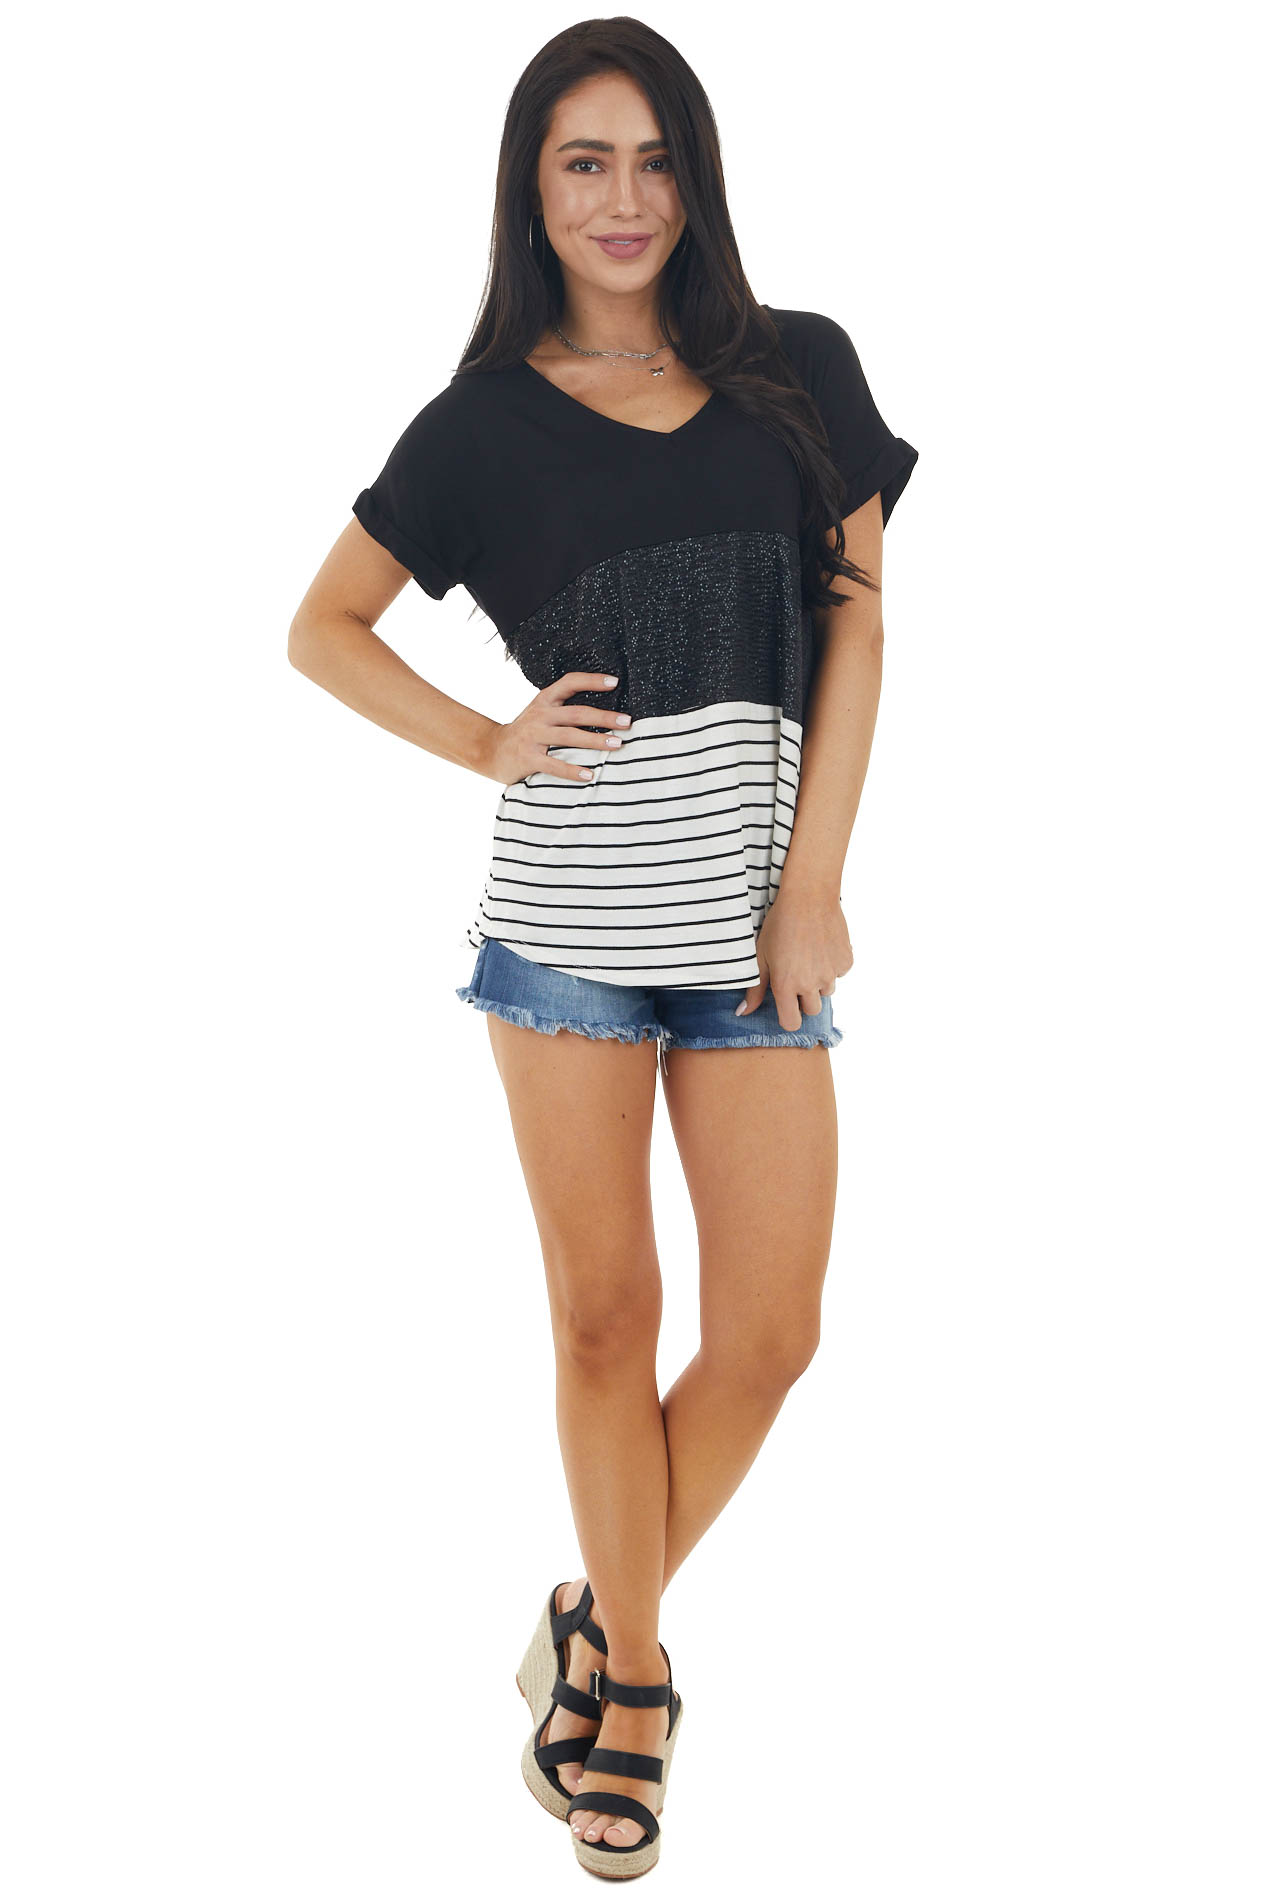 Black Colorblock Short Sleeve Knit Top with Sequins